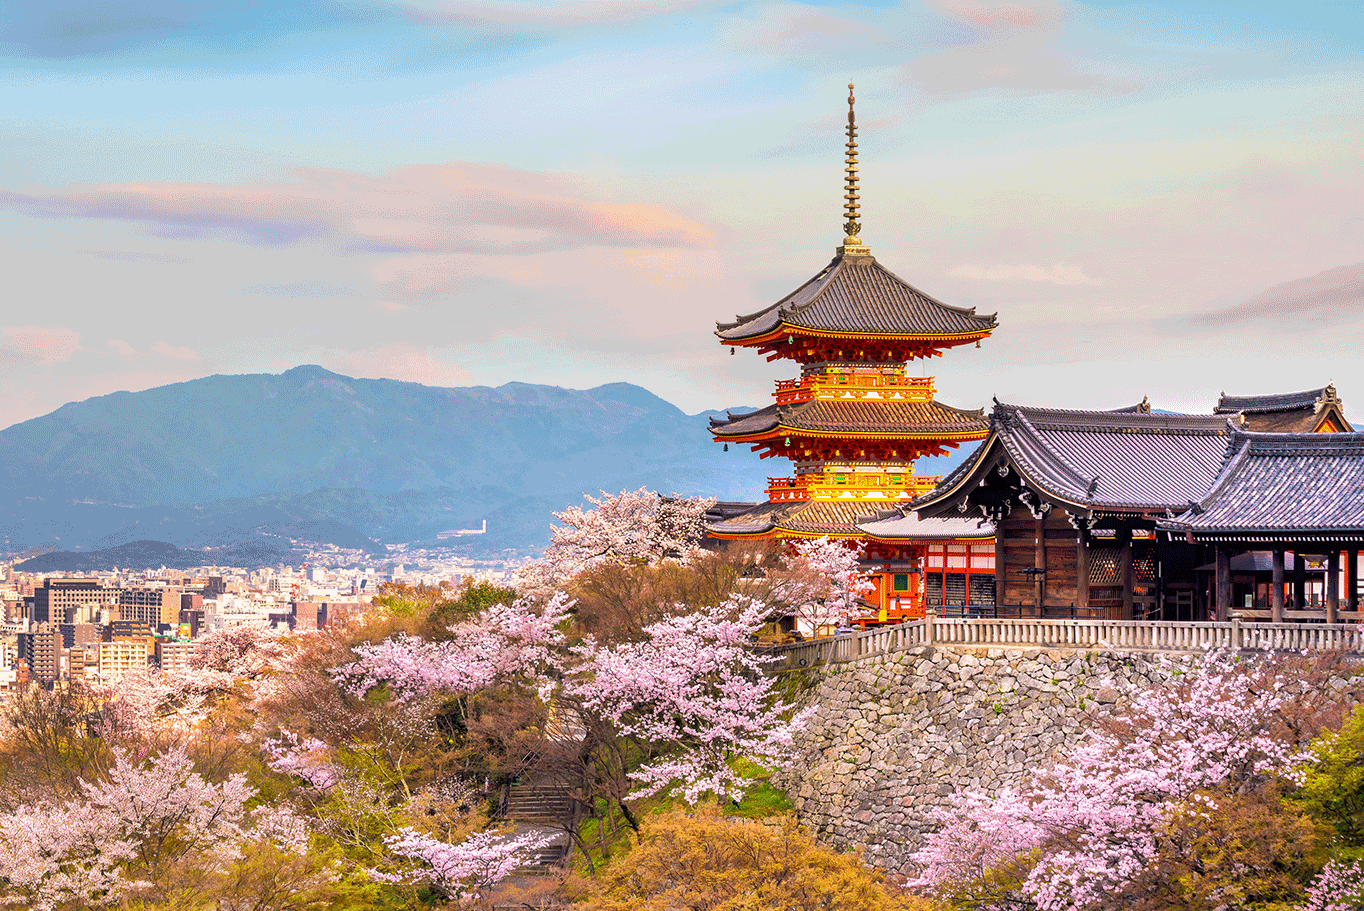 Stunning Shrines and Temples in Japan That Will Leave You Mesmerised